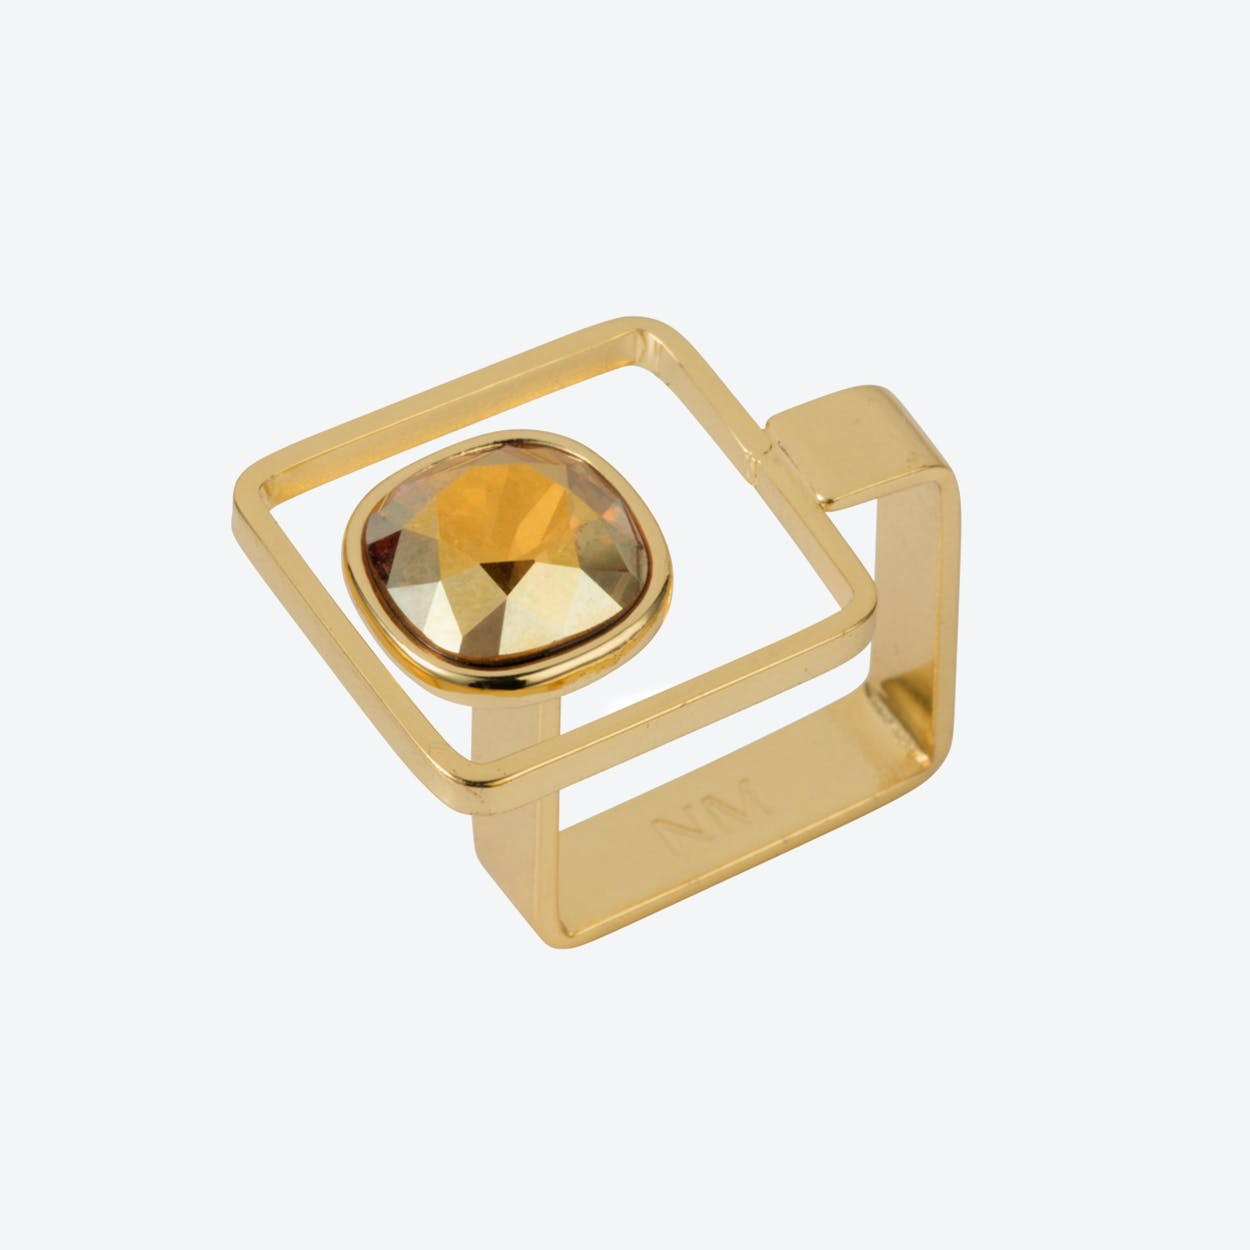 Square Frame Ring – Gold with Golden Shadow